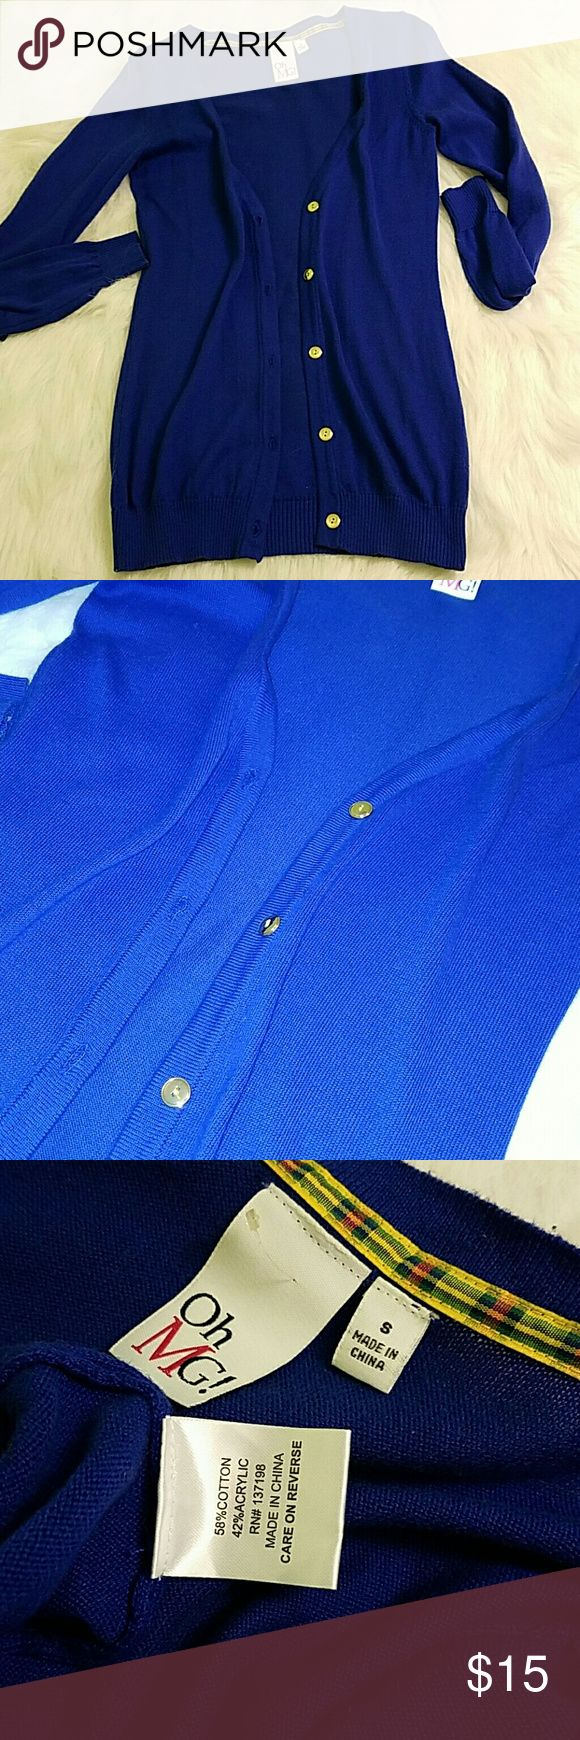 """Royal Blue Cardigan EUC: worn once and washed. SHOULDER TO HEM: 25.75"""" SIZE: Small  COLOR: royal blue  OFFERS WELCOME (EXCLUDES """"final sale"""" Items). BUNDLE &SAVE! THANKS FOR STOPPING BY! -Bobbie Sweaters Cardigans"""